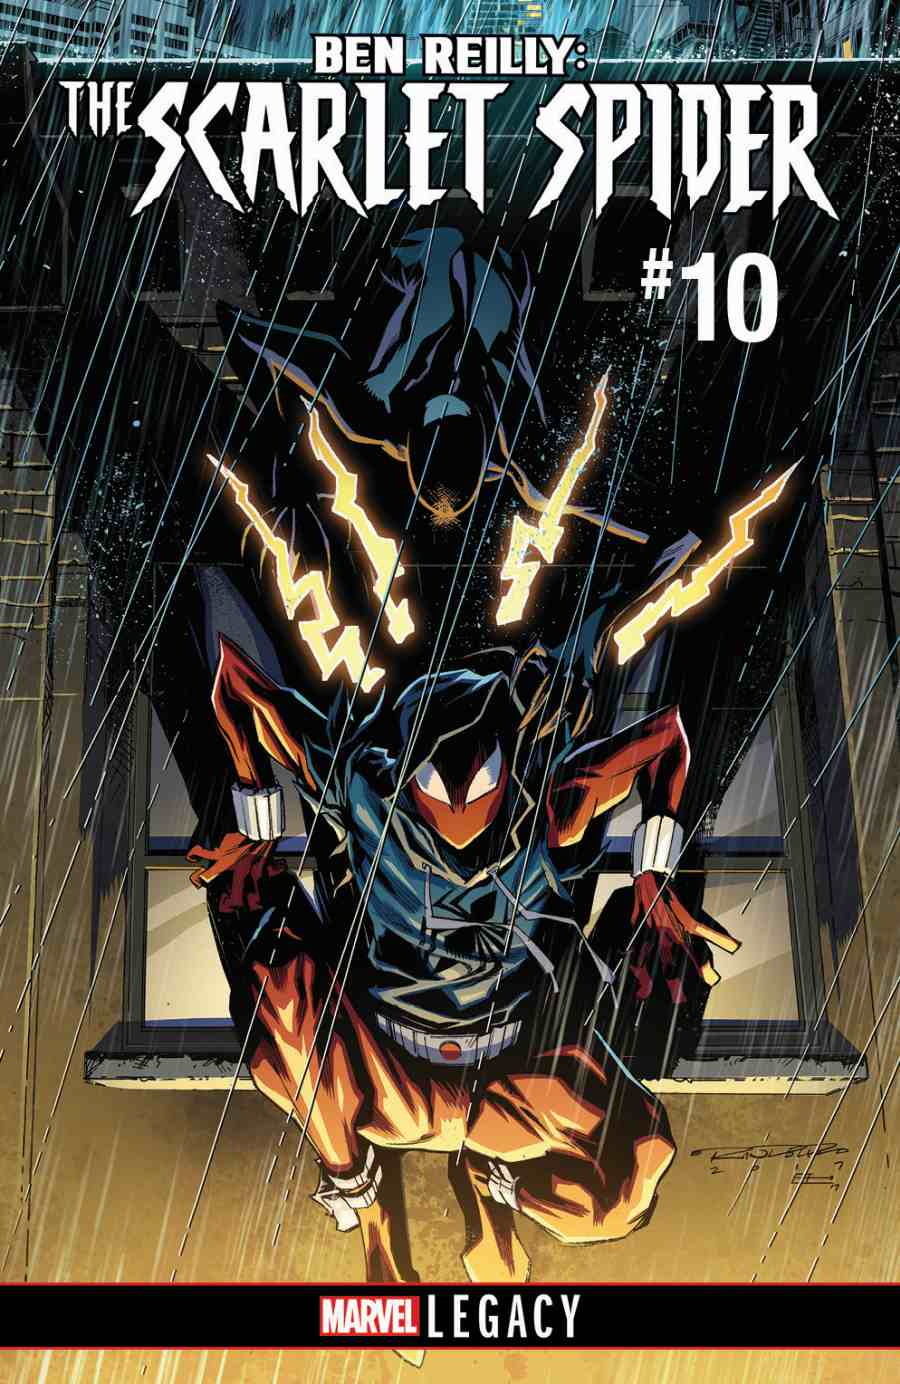 ben-reilly-the-scarlet-spider-10-marvel-legacy-1015163